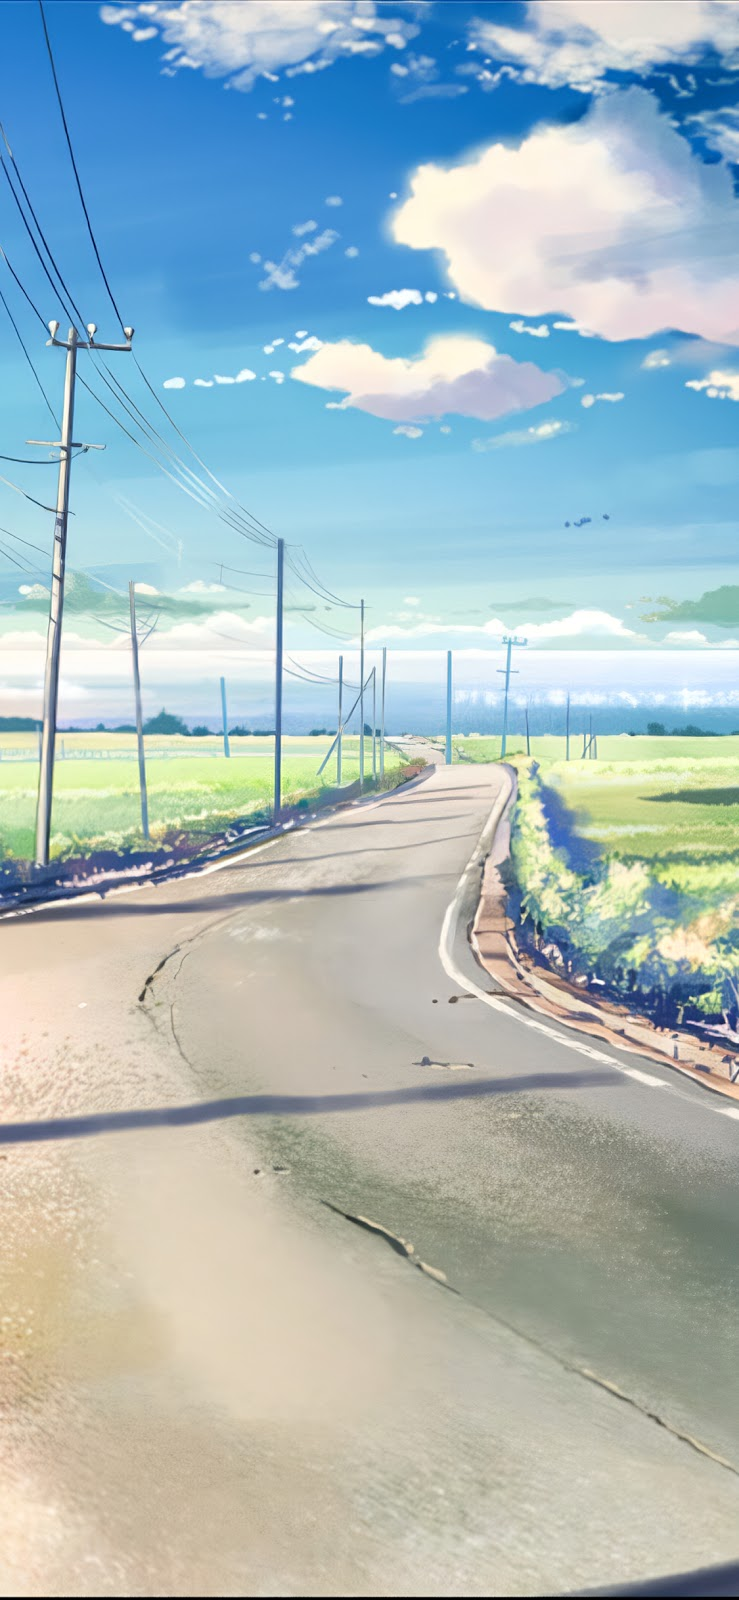 5 Centimeters Per Second Mobile Wallpaper